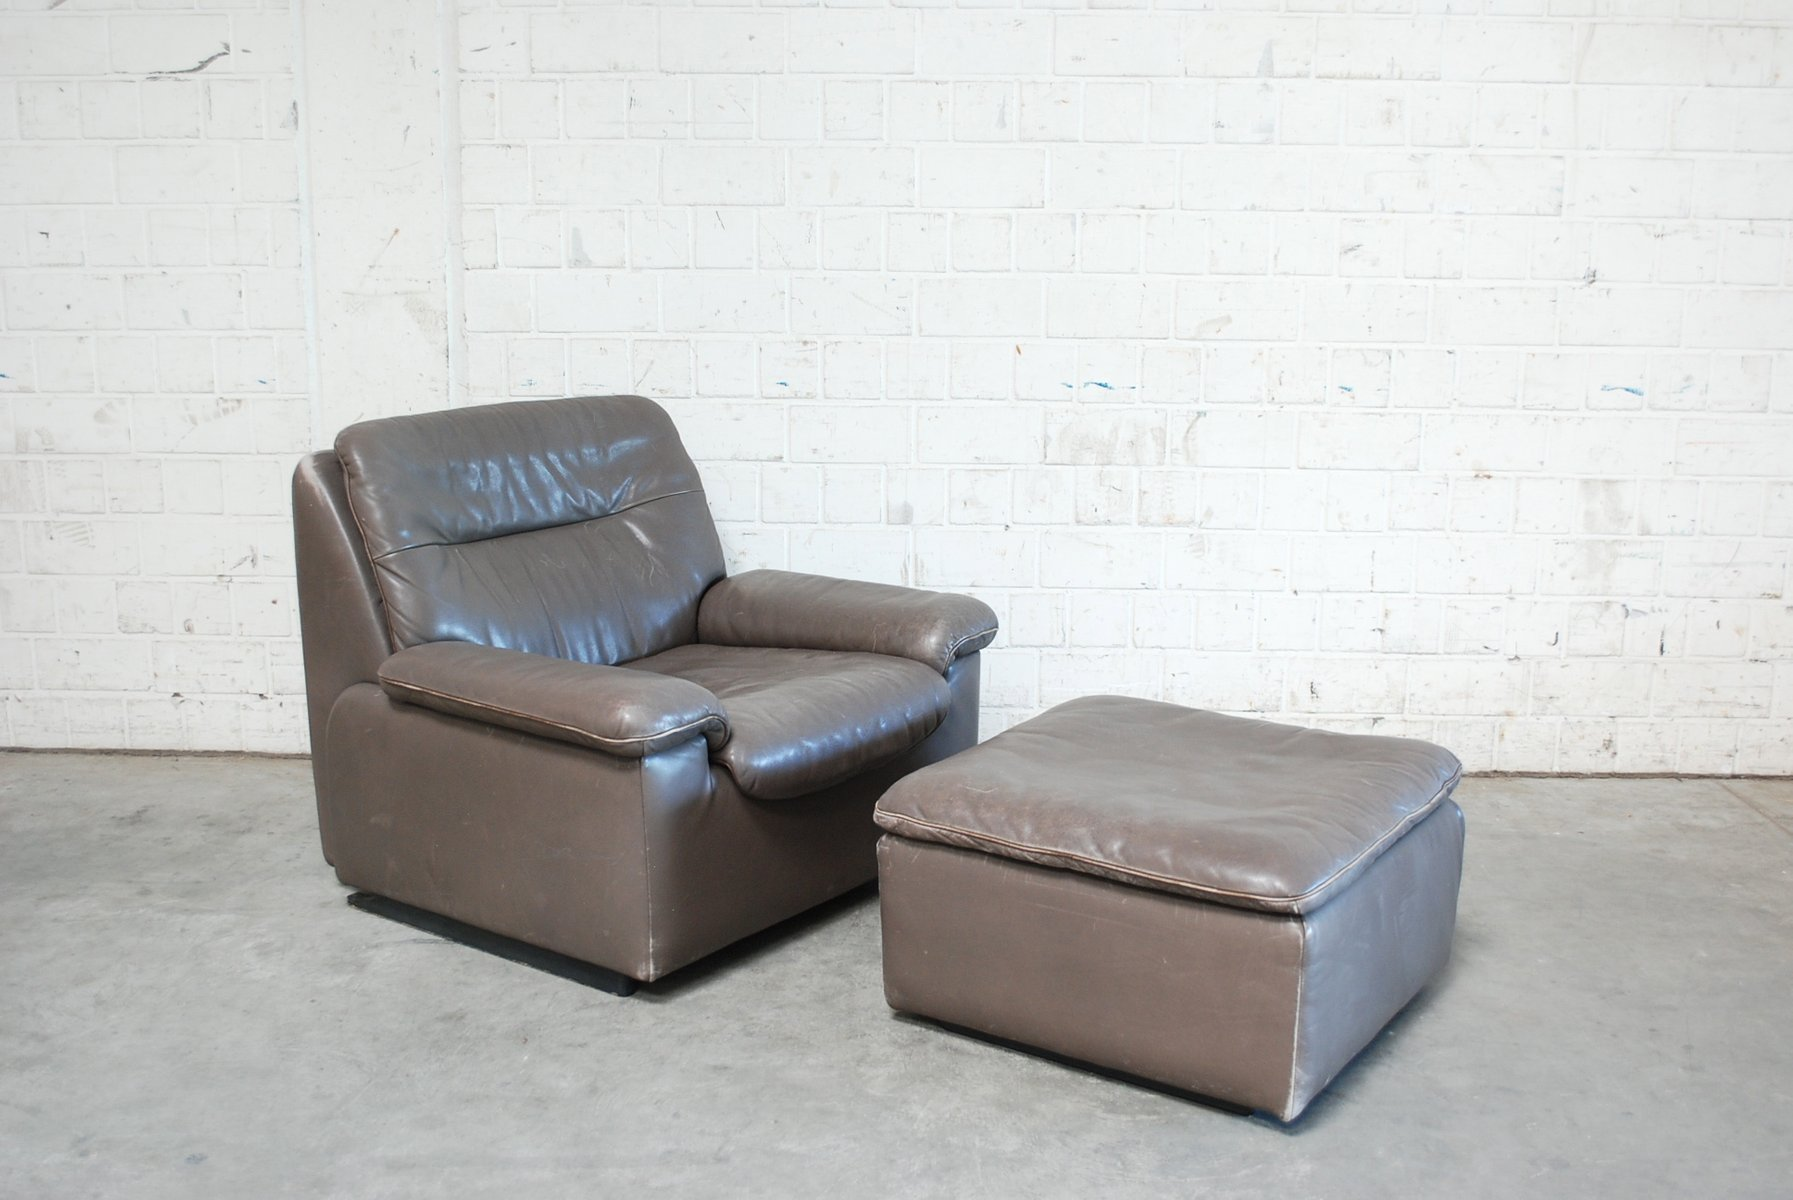 Swiss Grey Leather Lounge Chair U0026 Ottoman From De Sede, 1980s